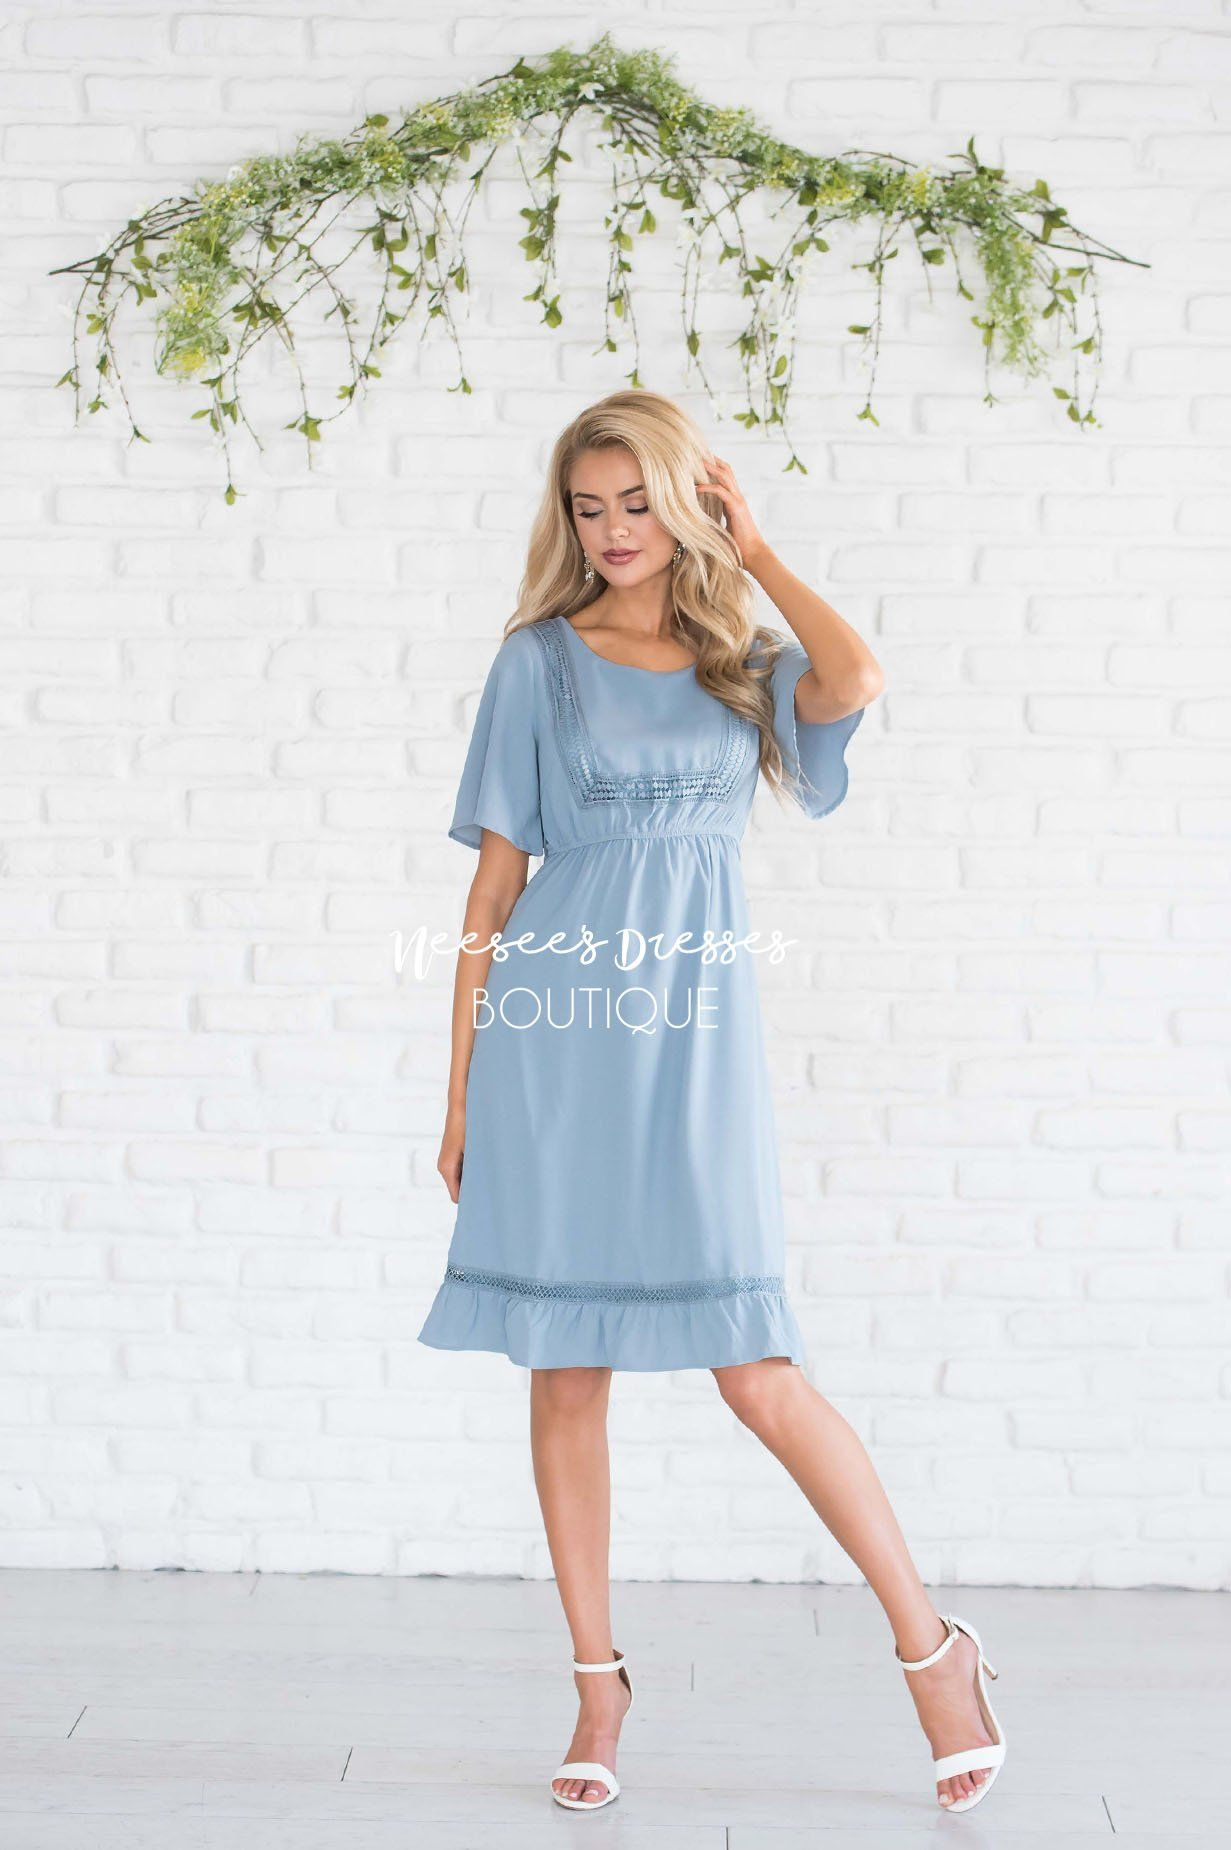 b4d8fe1aba709 Dusty Blue Lace Trim Ruffle Detail Modest Dress | Modest Clothing ...